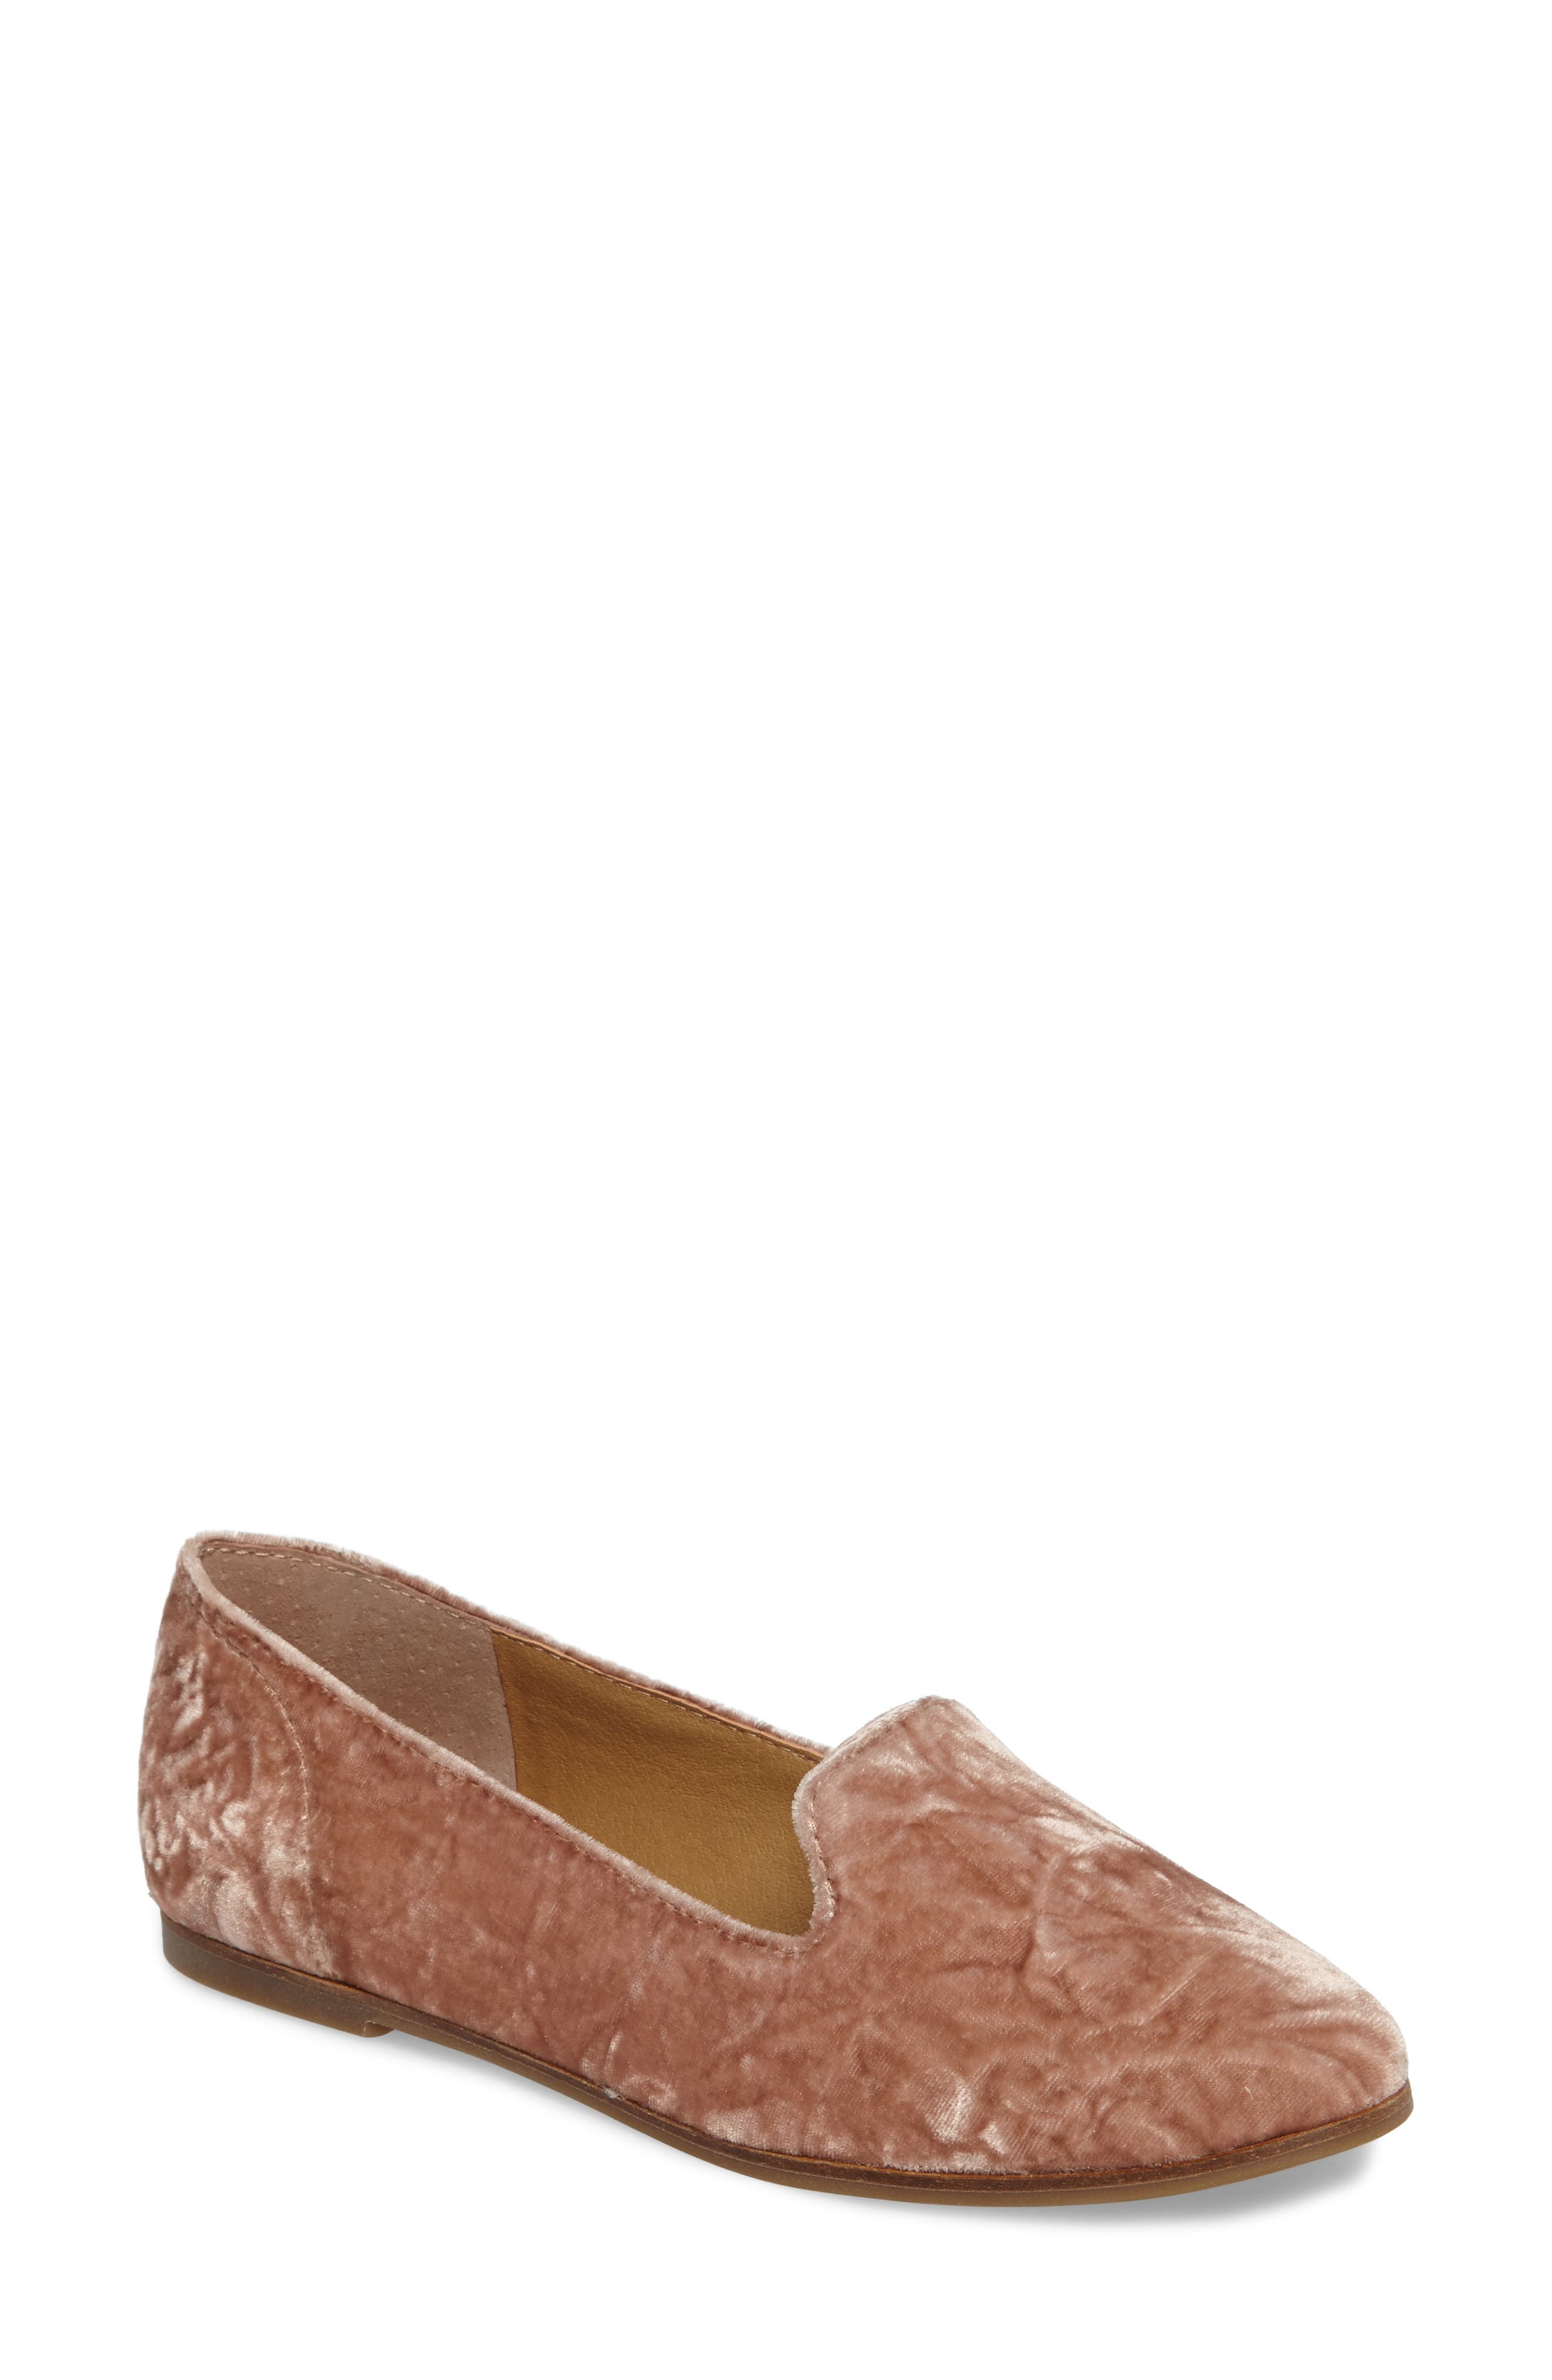 Alternate Image 1 Selected - Lucky Brand Carlyn Loafer Flat (Women)